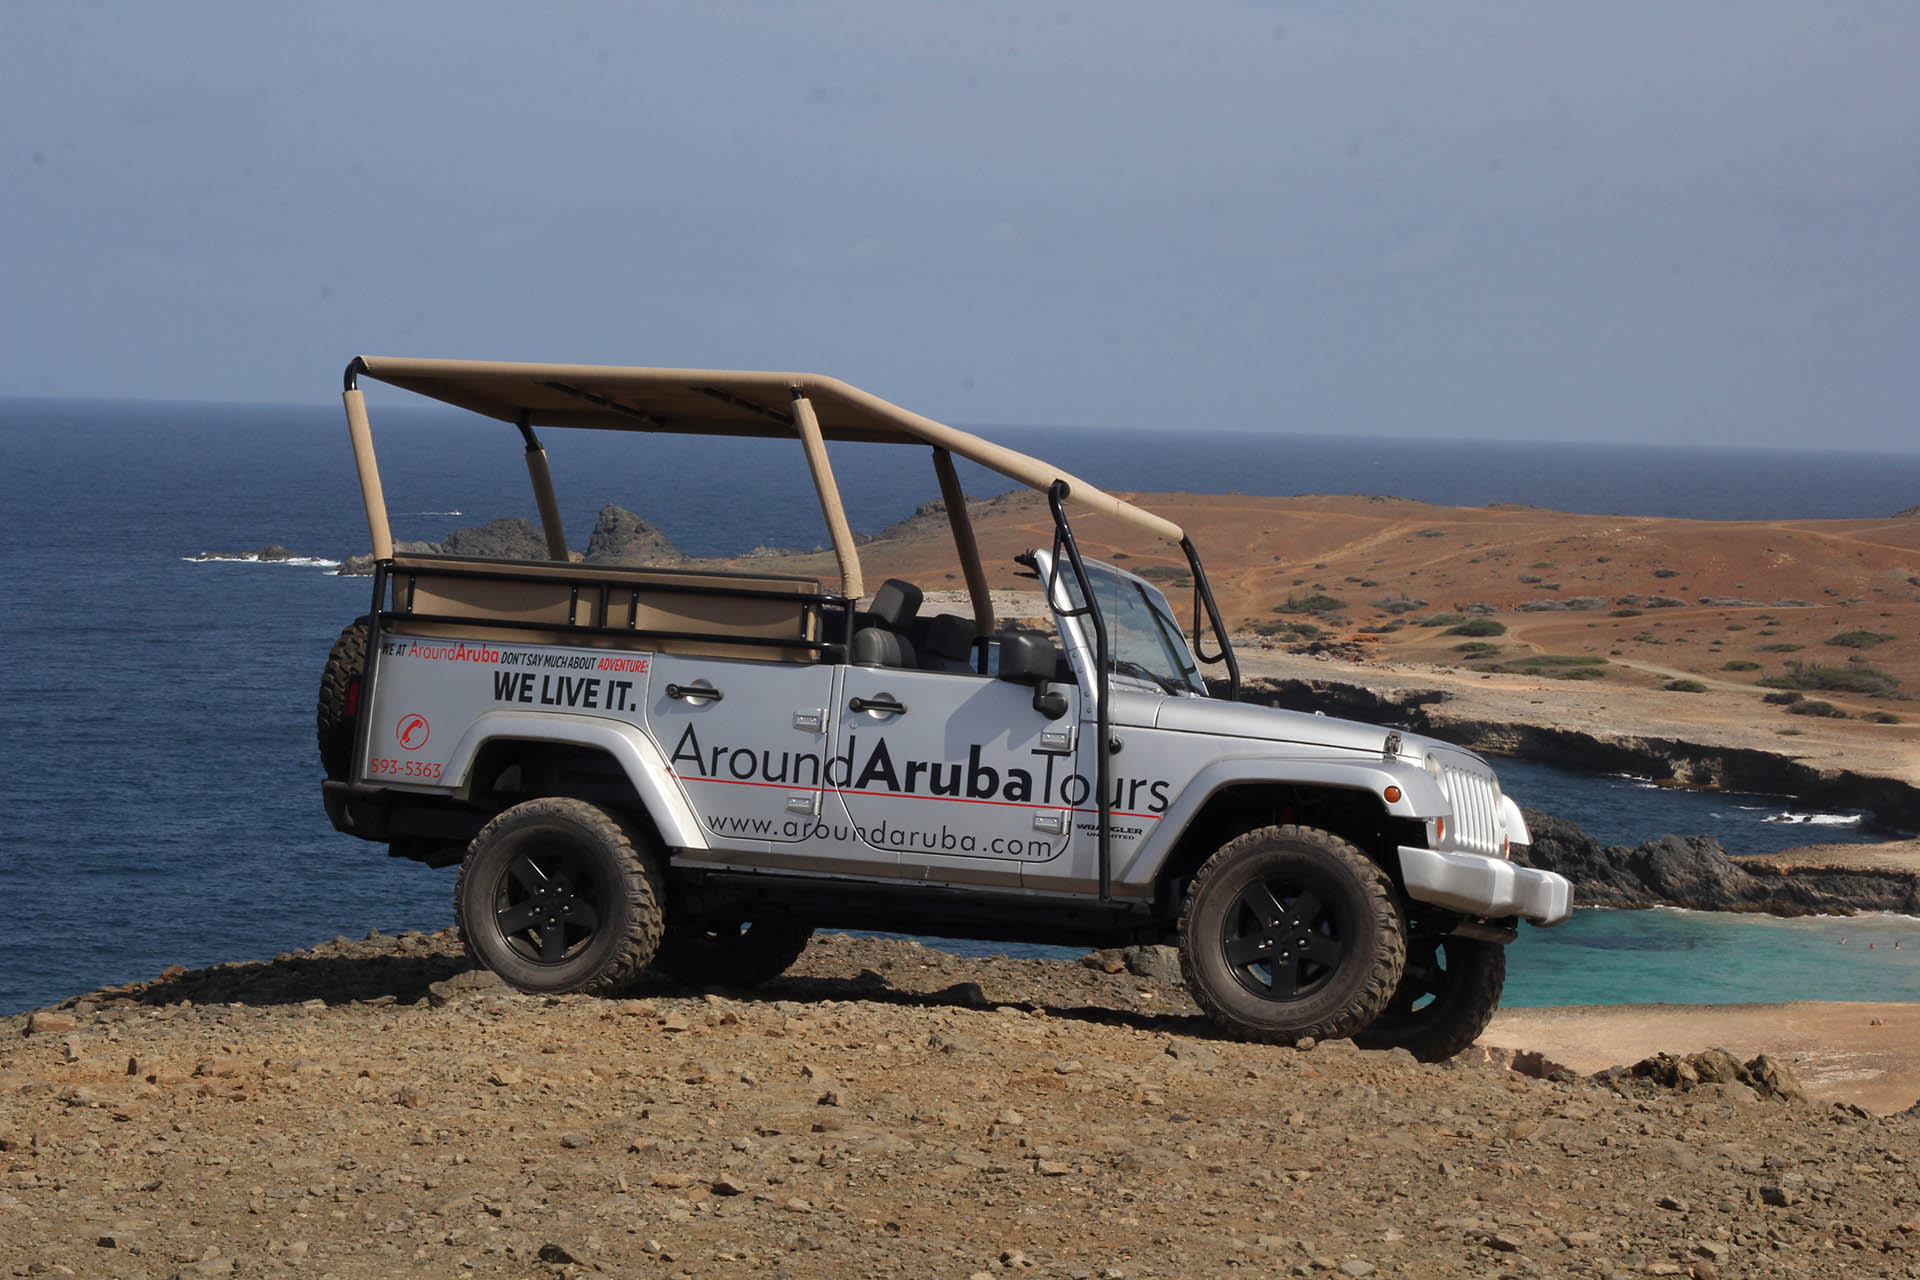 Aruba Safari Jeep Tour